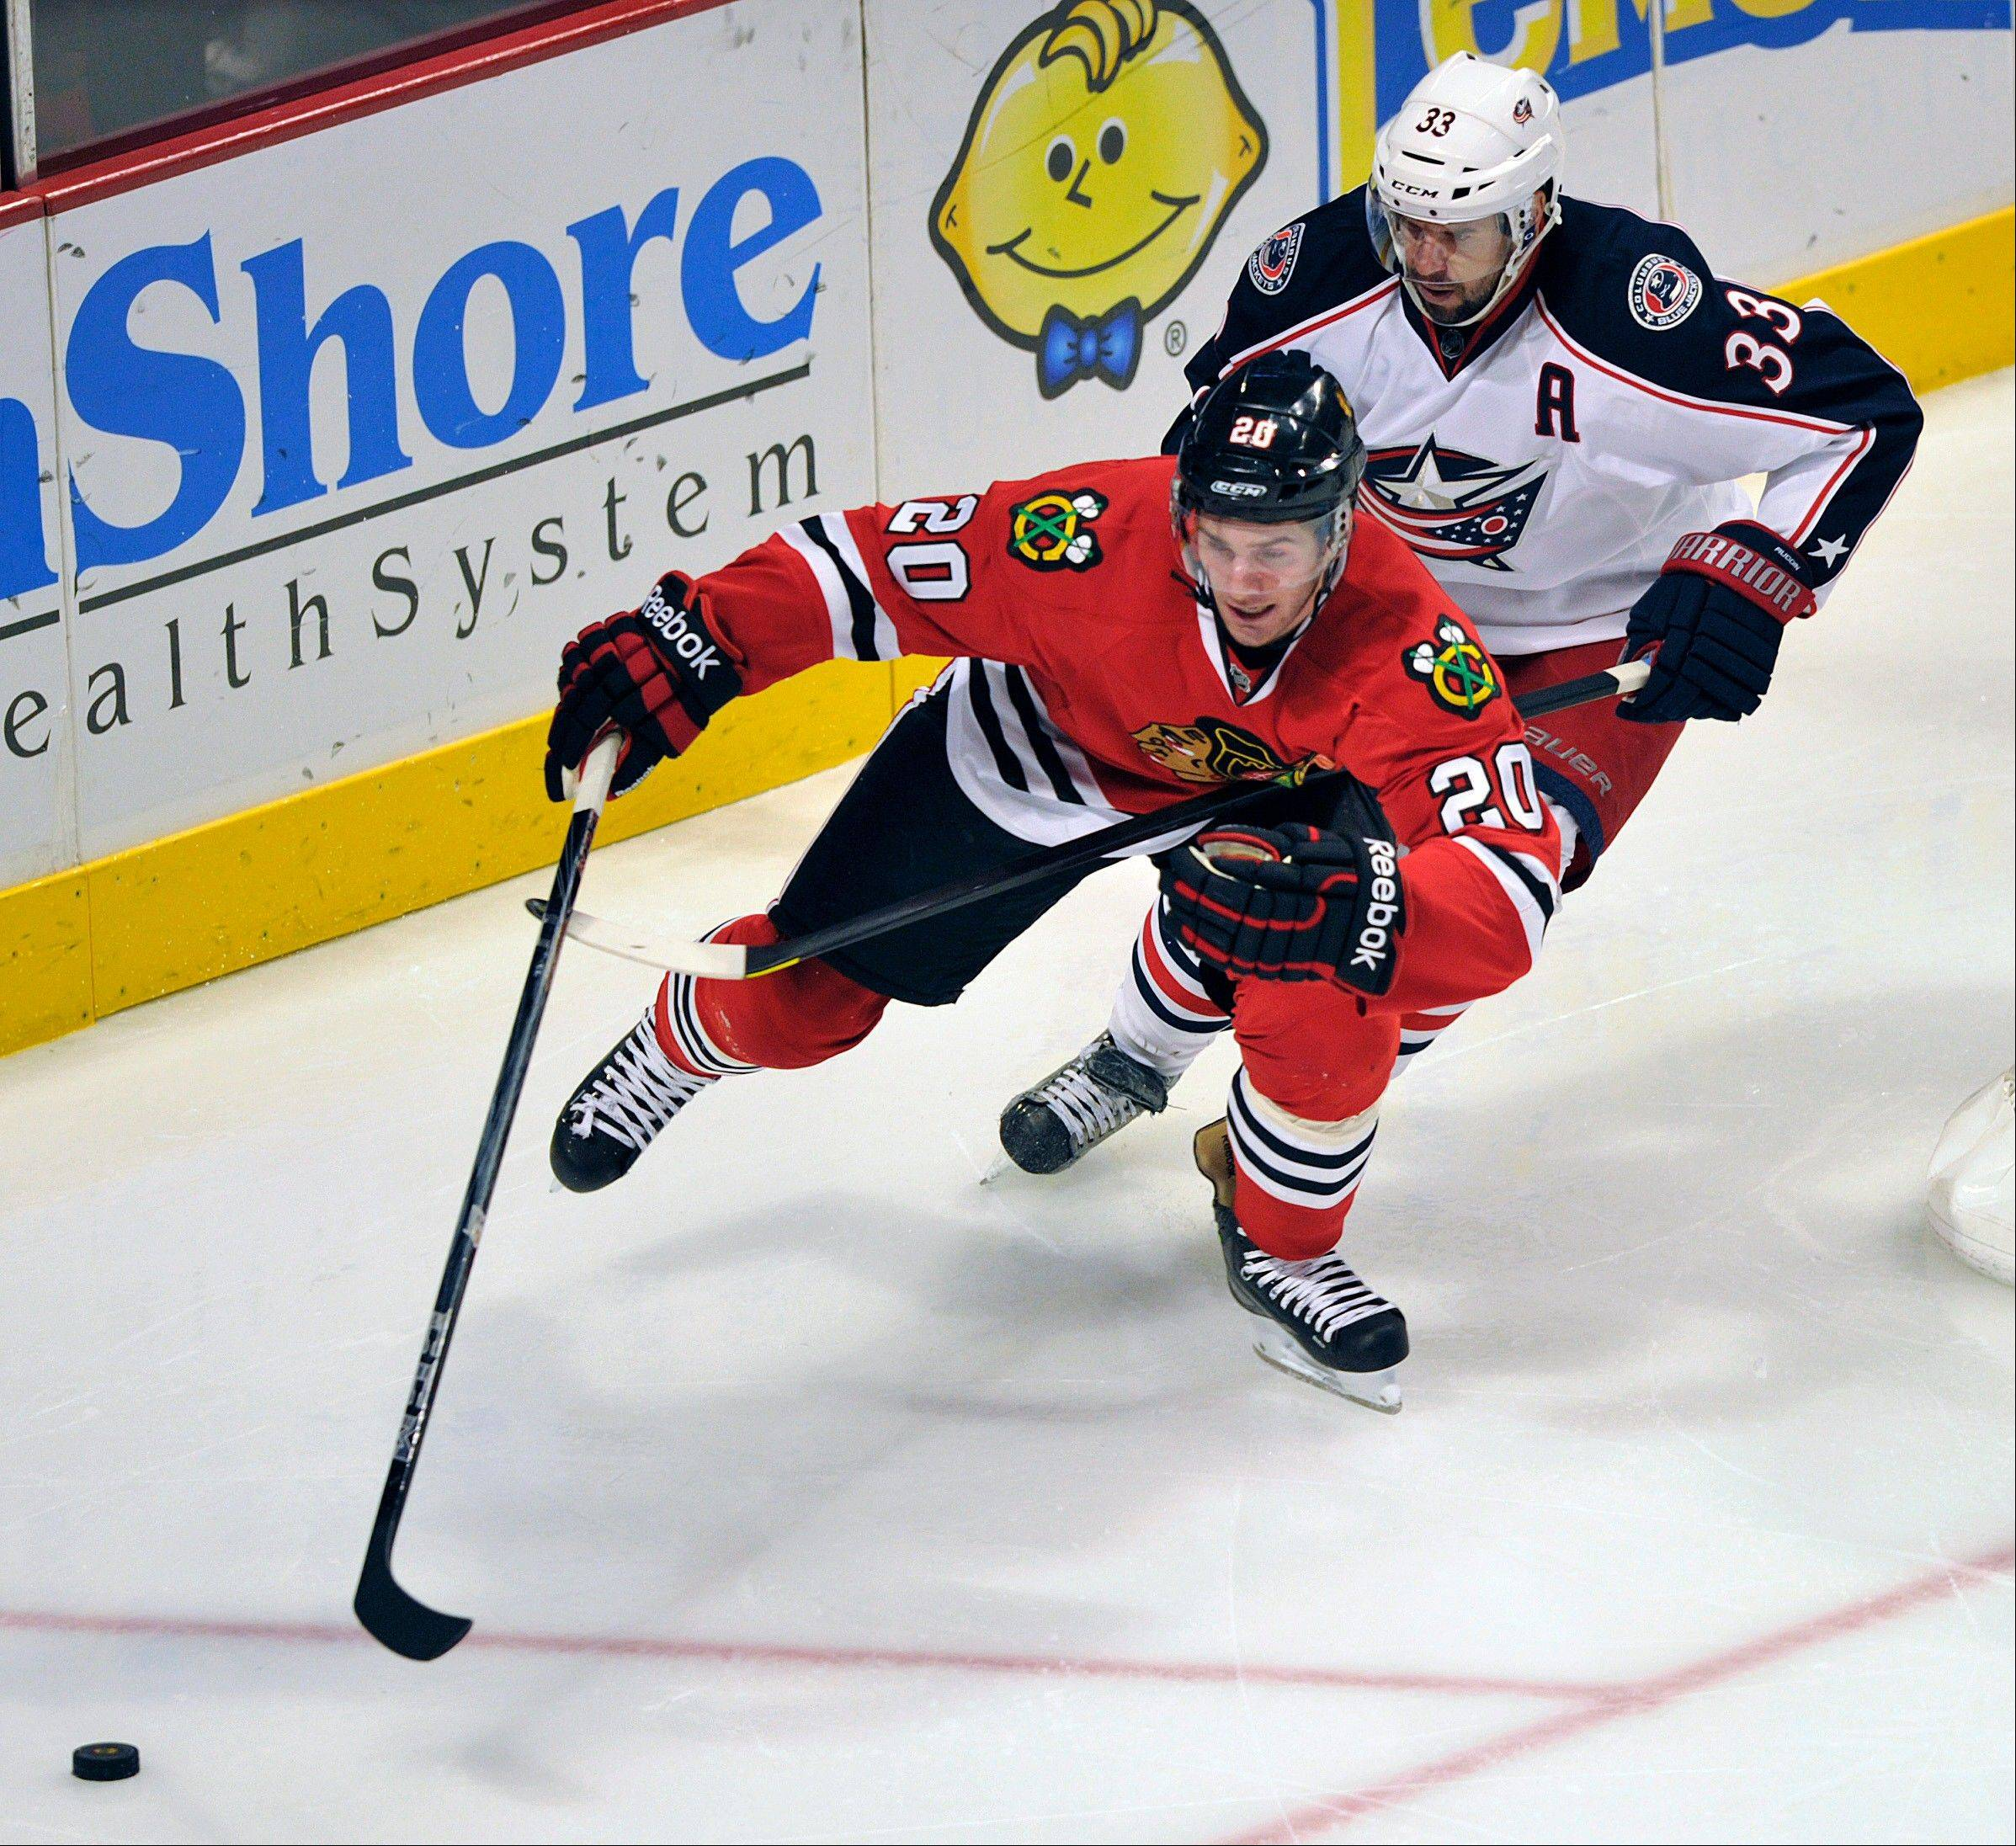 Blackhawks winger Brandon Saad skates towards the puck as Columbus Blue Jackets' Adrian Aucoin defends during the third period of an NHL hockey game Sunday, Feb. 24, 2013, in Chicago. Chicago won 1-0.